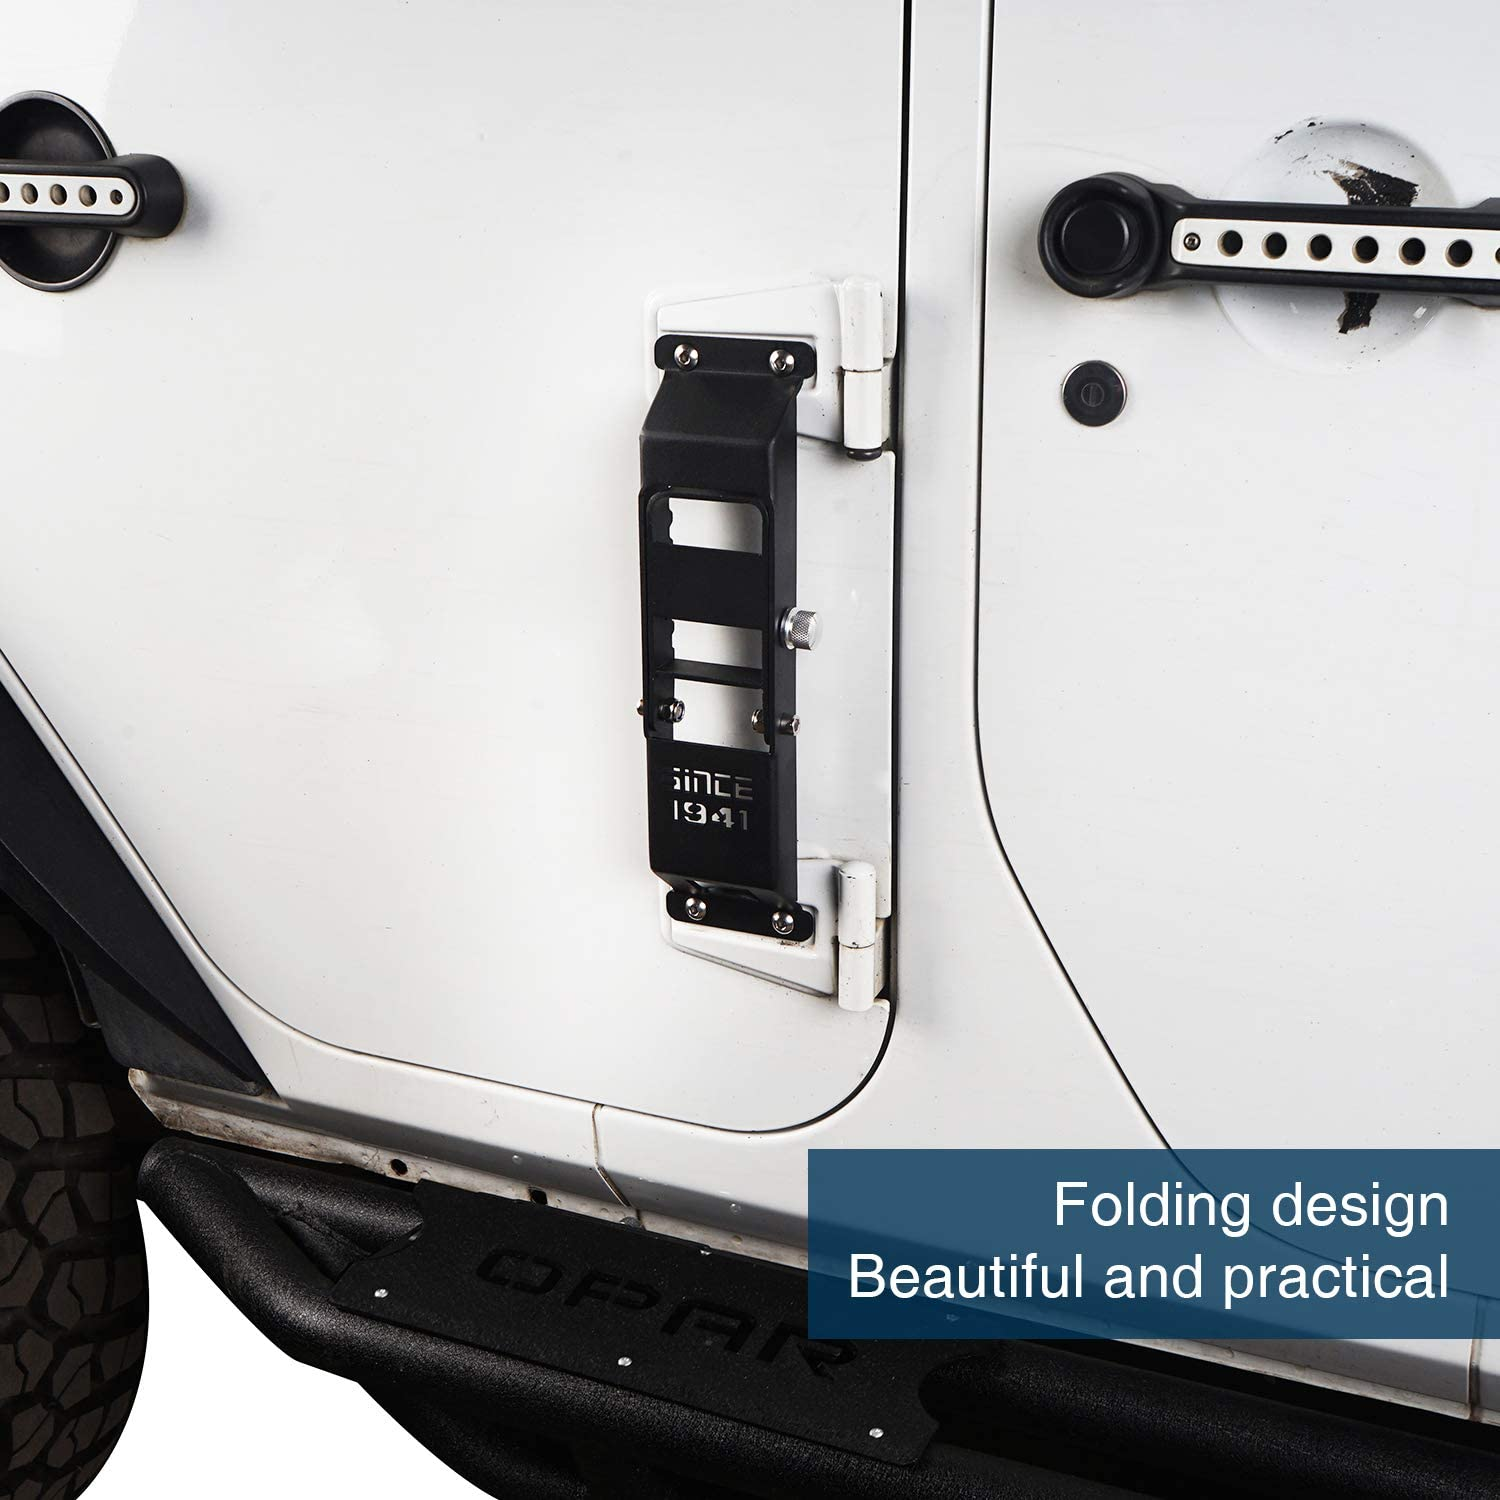 Kutang Modified Jeep Wrangler Door Hinge Step Foot Pedal w//Since 1941 Sign for 2007-2018 Jeep Wrangler JK /& Unlimited